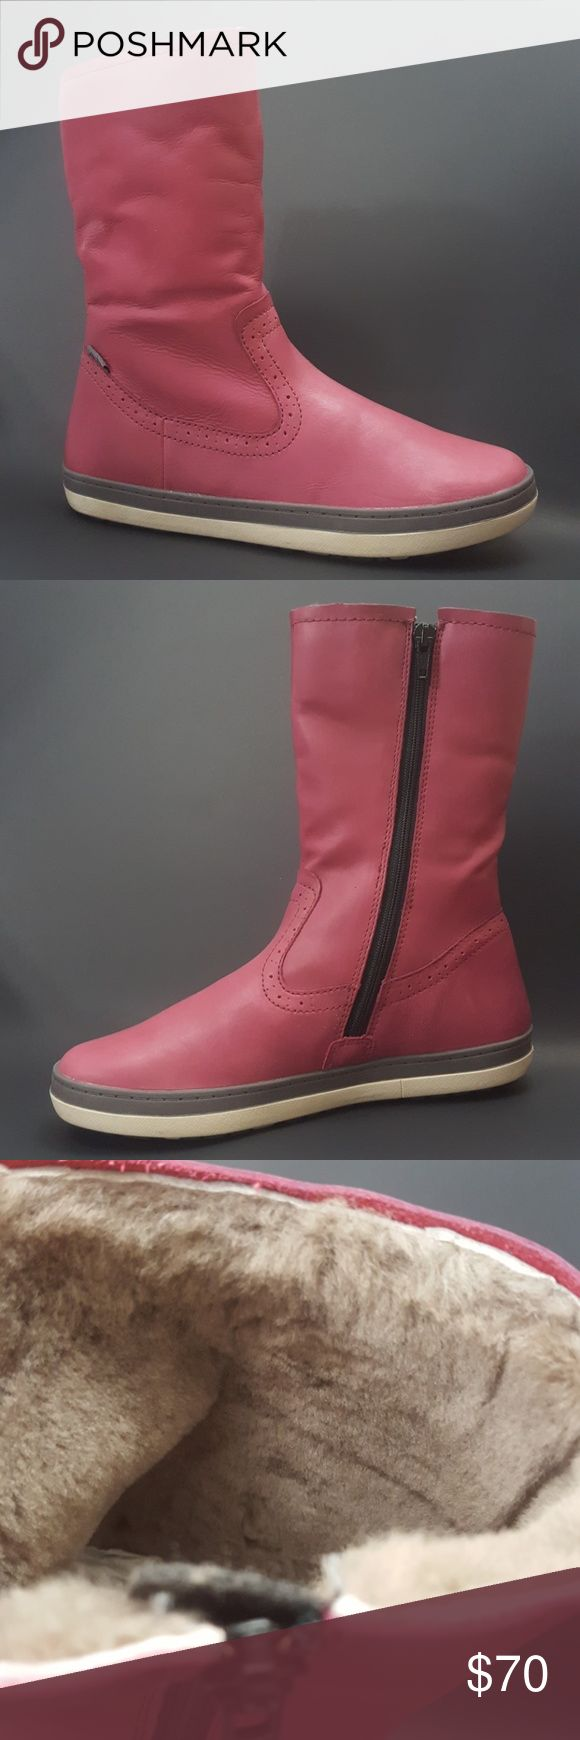 VADO Women's Boots LEATHER Narrow Size 7 VADO BRAND  Condition : New without box Size : 7 USA/38 EURO Color: Pink Width : Narrow  Material : Leather Inventory: P1 Retail Price : $120  Shipping policy  -1 or 2 business day after receive sold notification   Why shopping with vivianshoe_store  -Our product is genuine and limit quantity -We sell high quality product european brand -We ship fast -We offer great customer service  BEST OFFER AVAILABLE  Please check another item for sale if you…